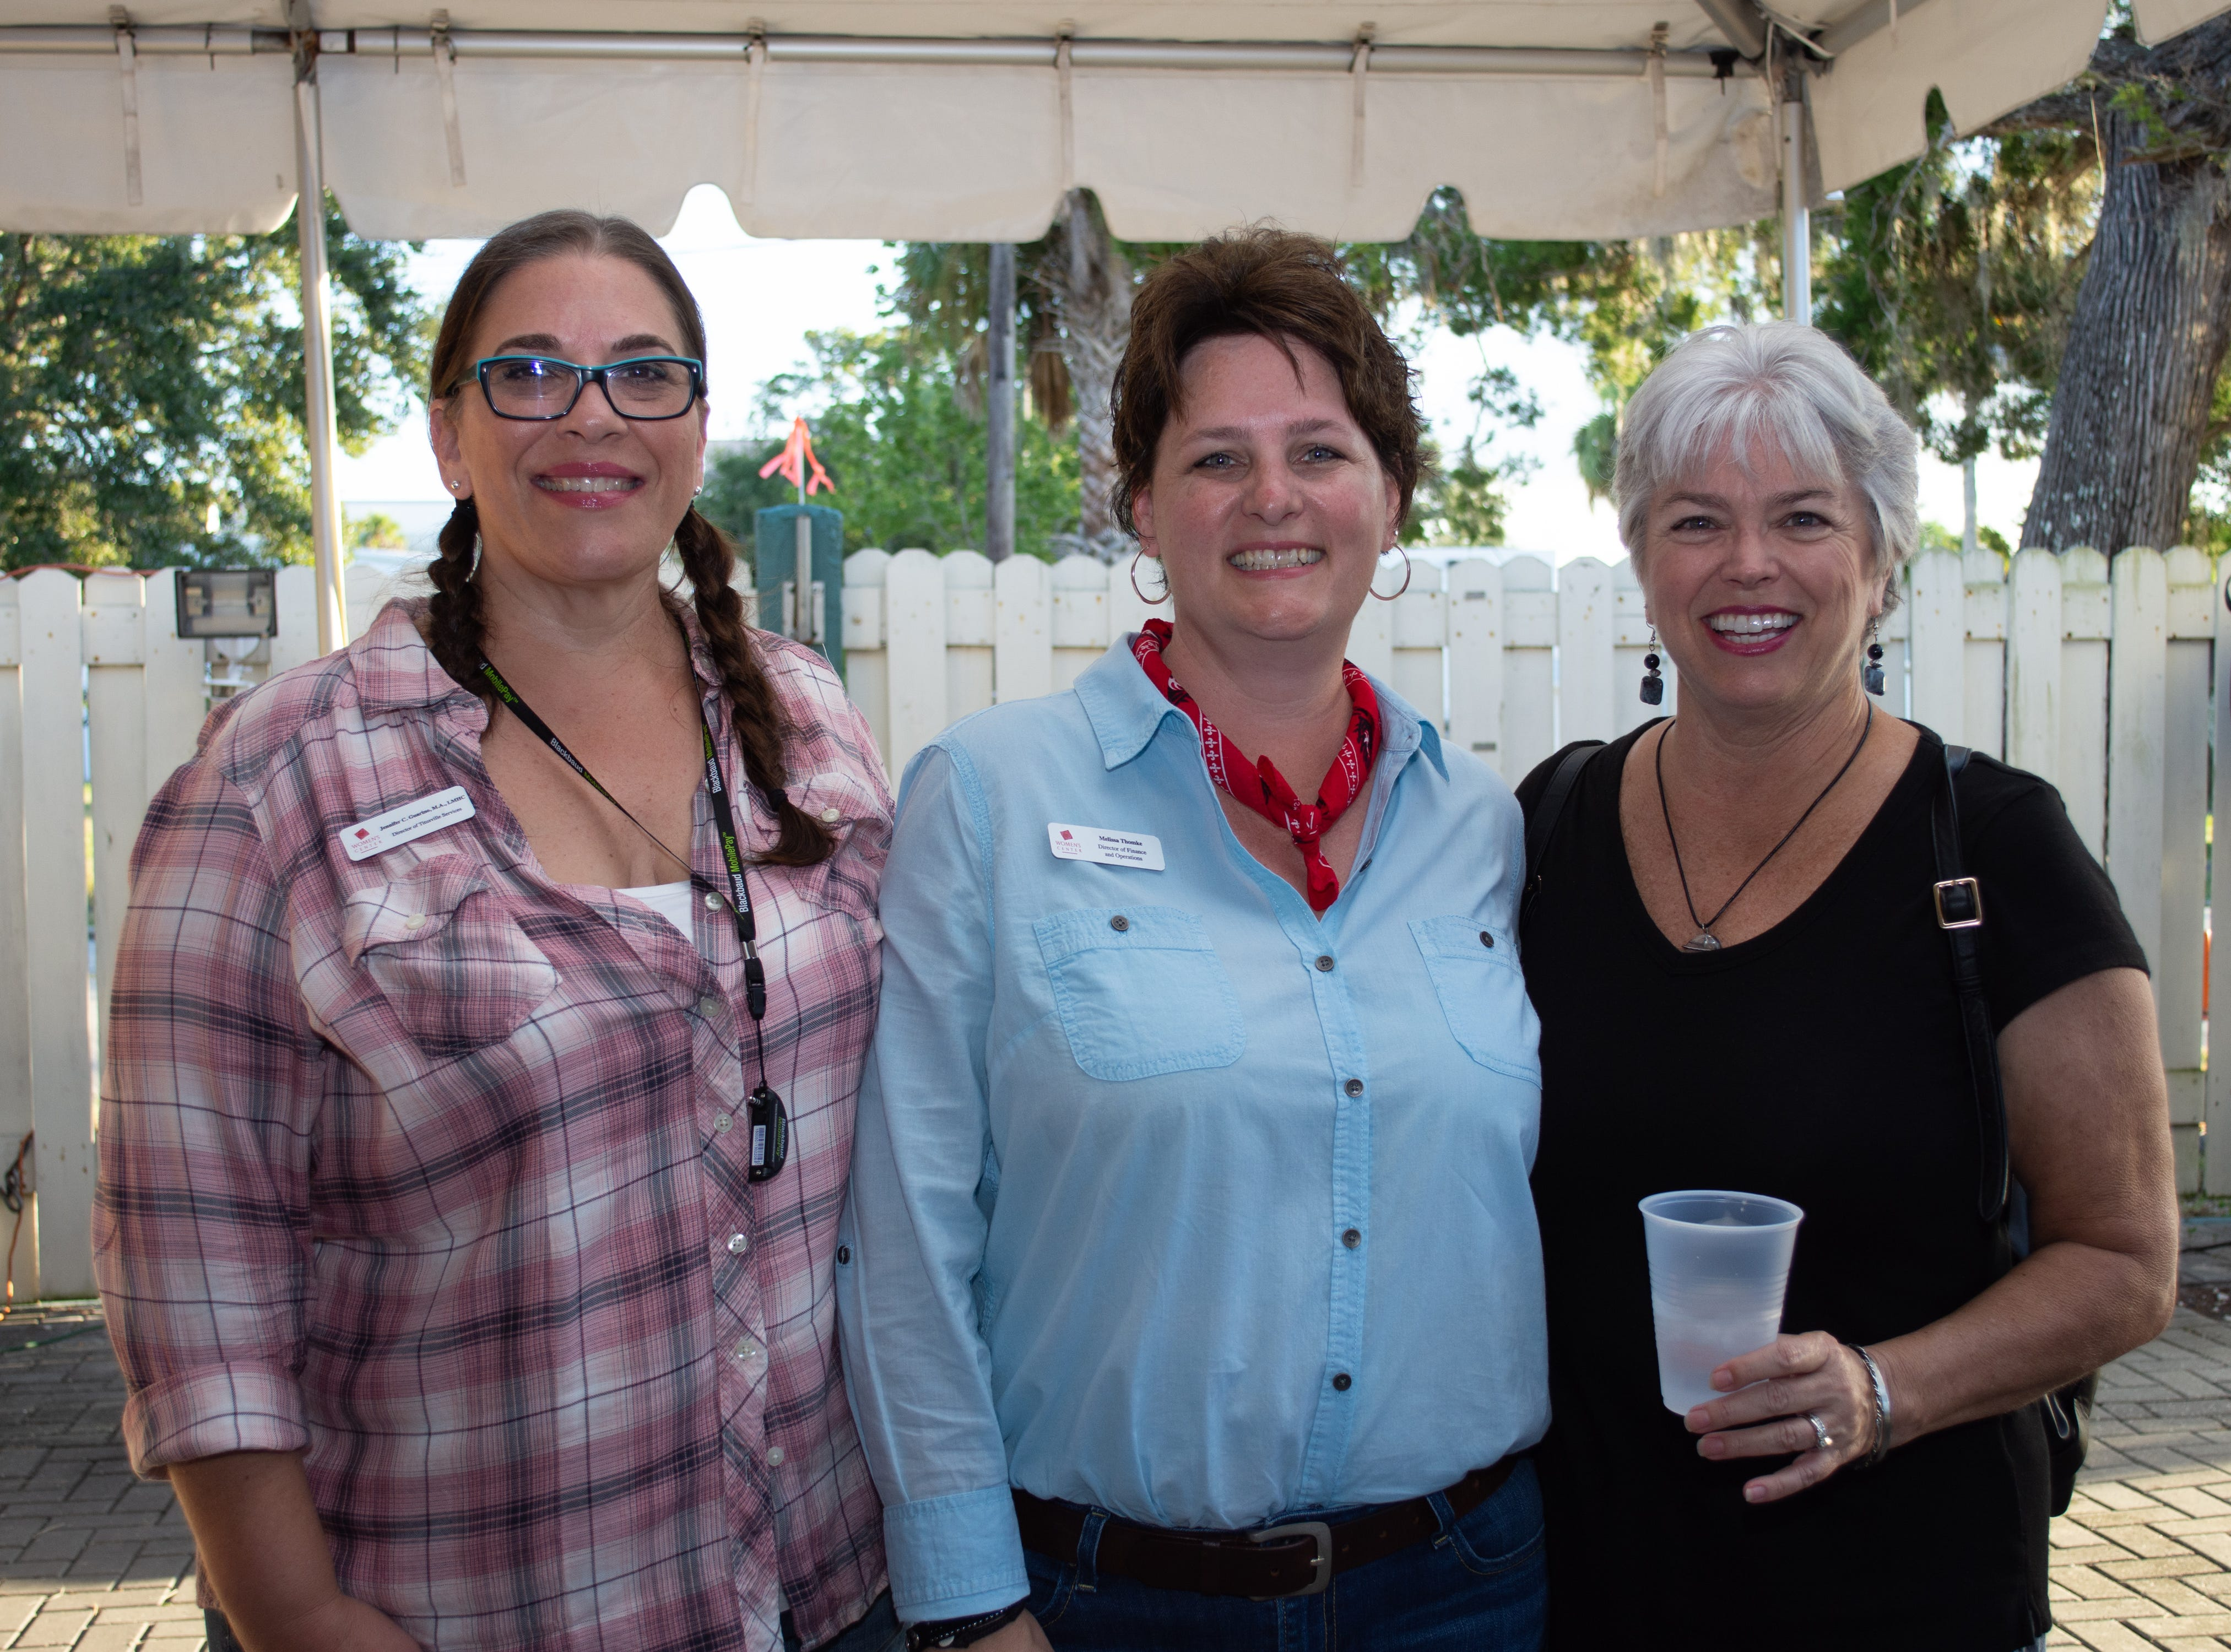 The Woman's center Director of Titusville services Jennifer Guarino, Director of Finance and Operation Melissa Tomke, and Execuitive Director Jenny Gessler. Arron Lampkin/For FLORIDA TODAY